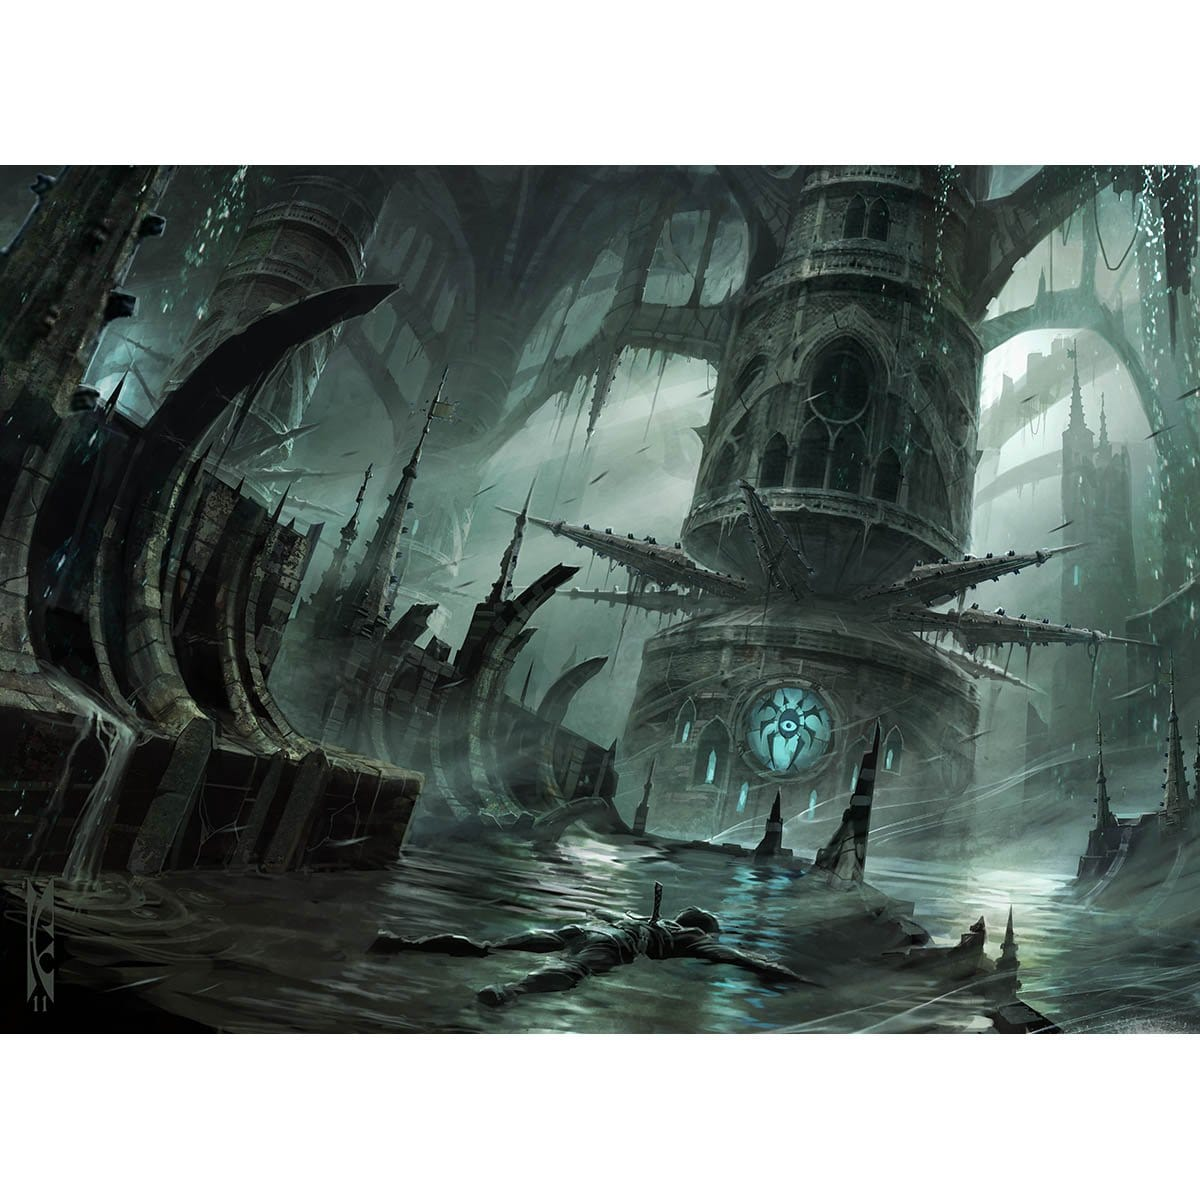 Watery Grave Print - Print - Original Magic Art - Accessories for Magic the Gathering and other card games